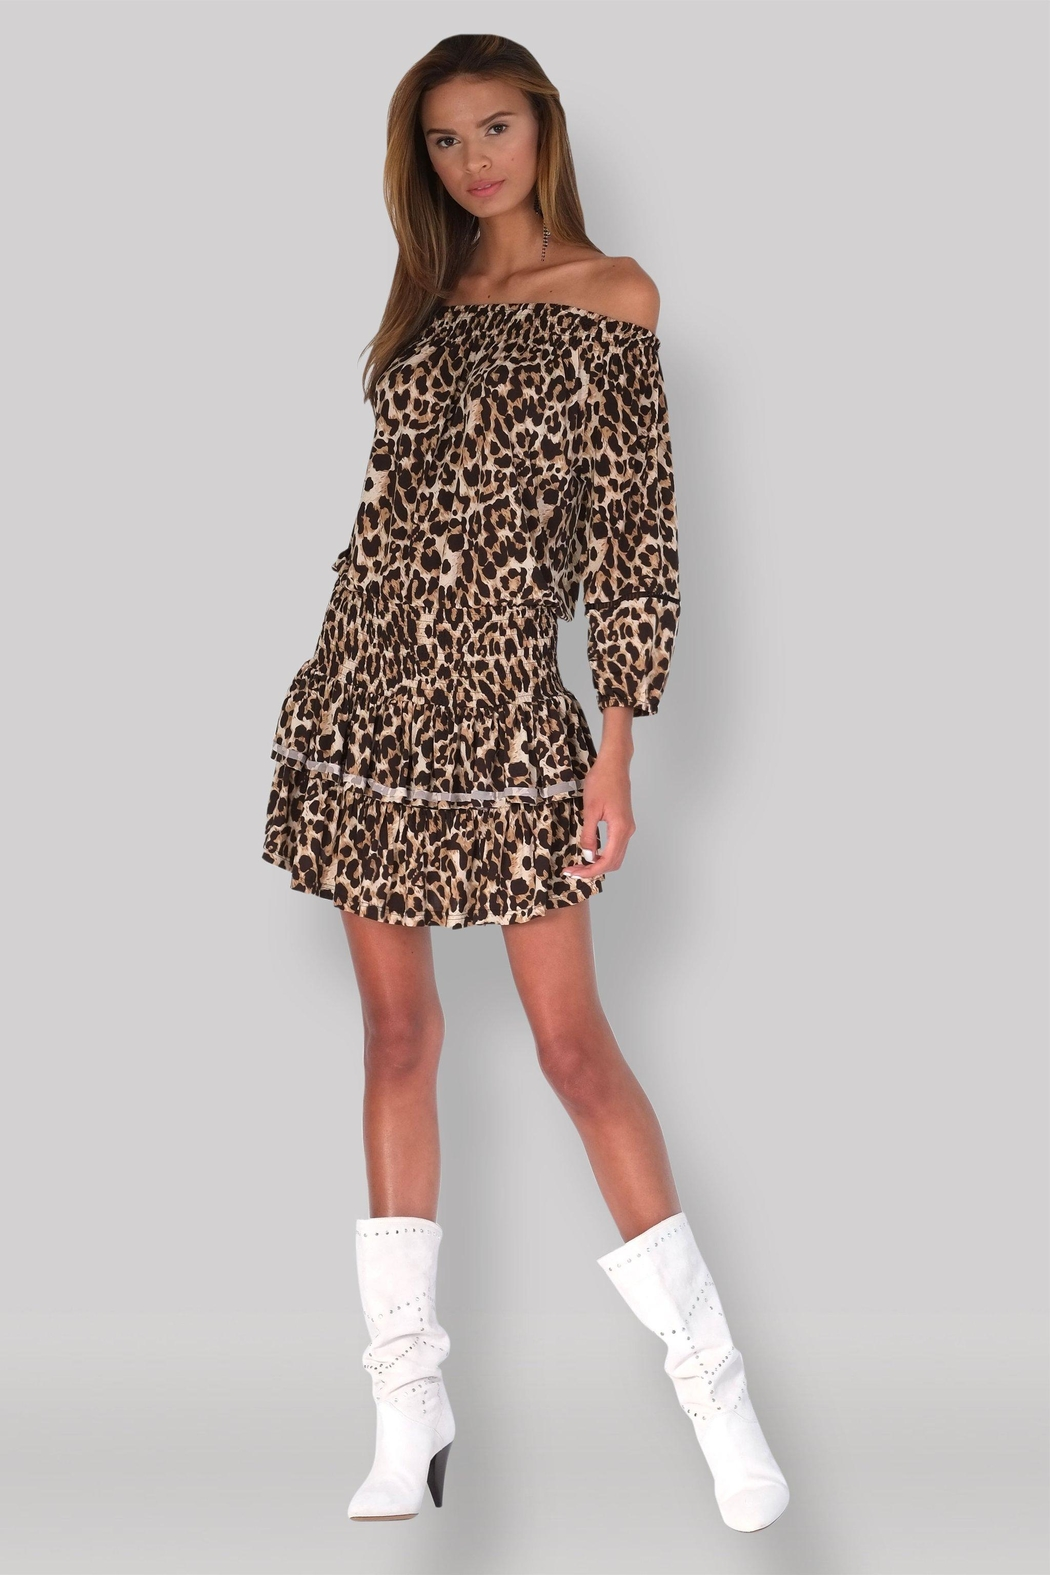 Muche et Muchette Ellyn Dress - Leopard - Back Cropped Image